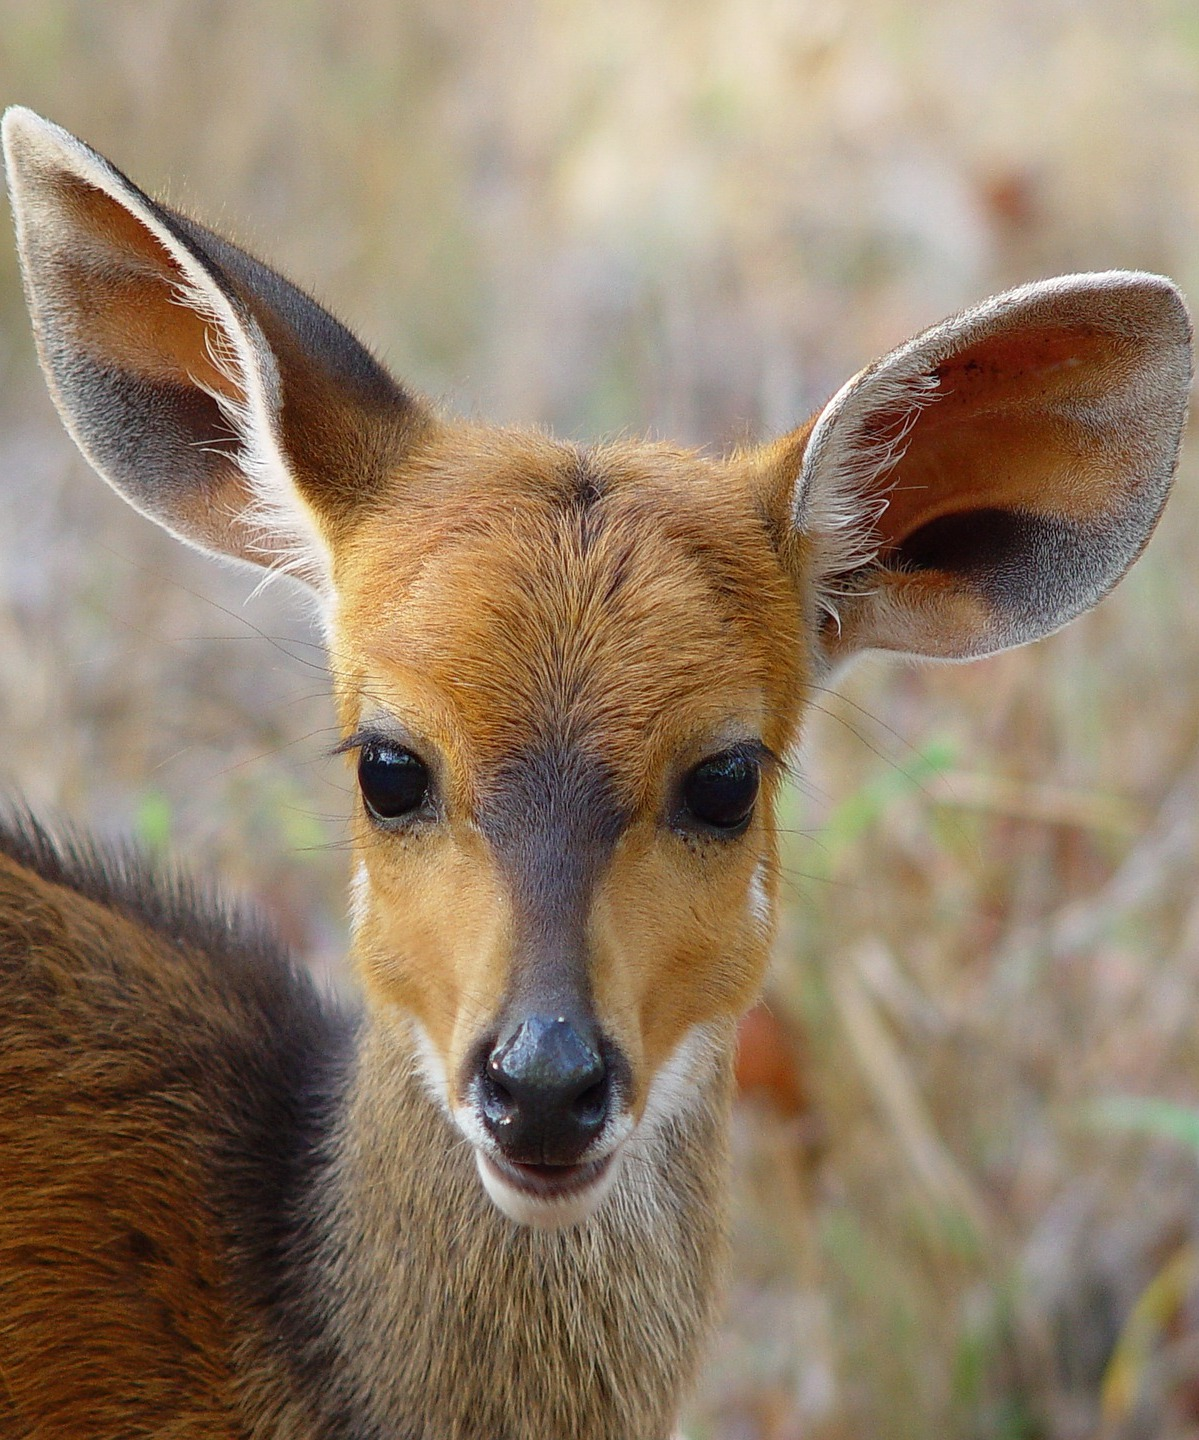 A face of a young bushbuck antelope.